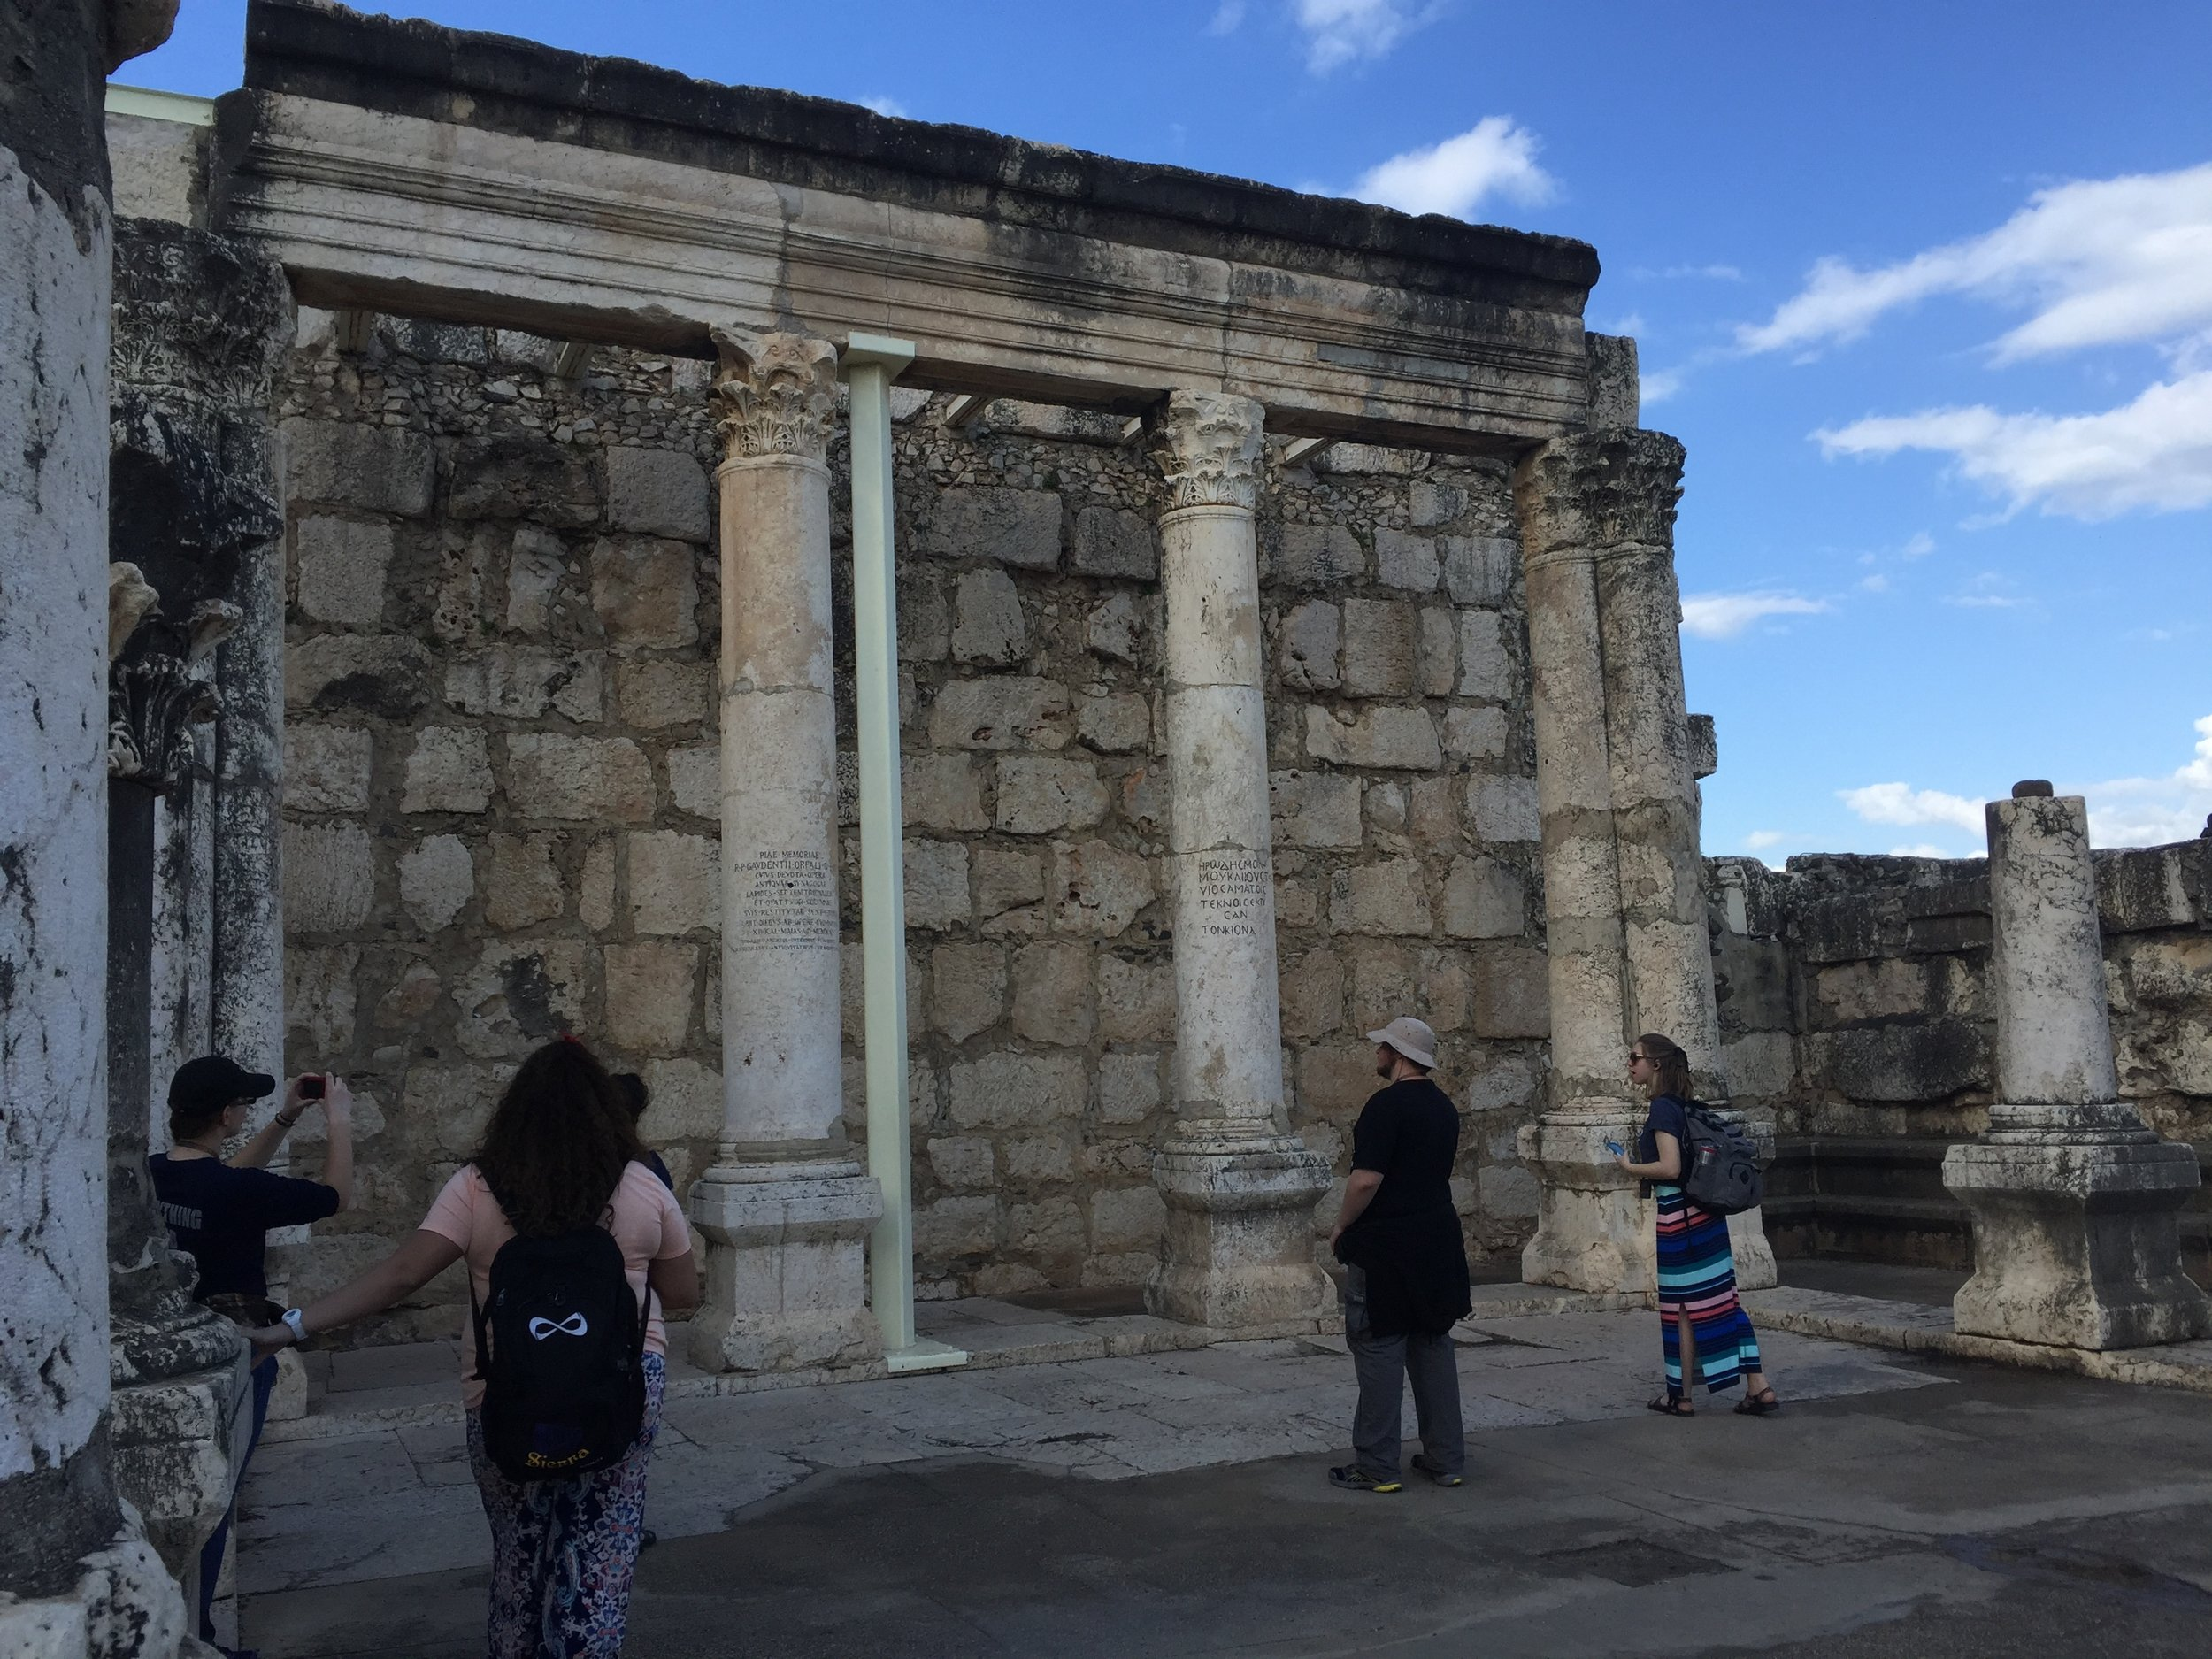 A forth century synagogue built on the ruins of a first century synagogue Jesus would've taught in.